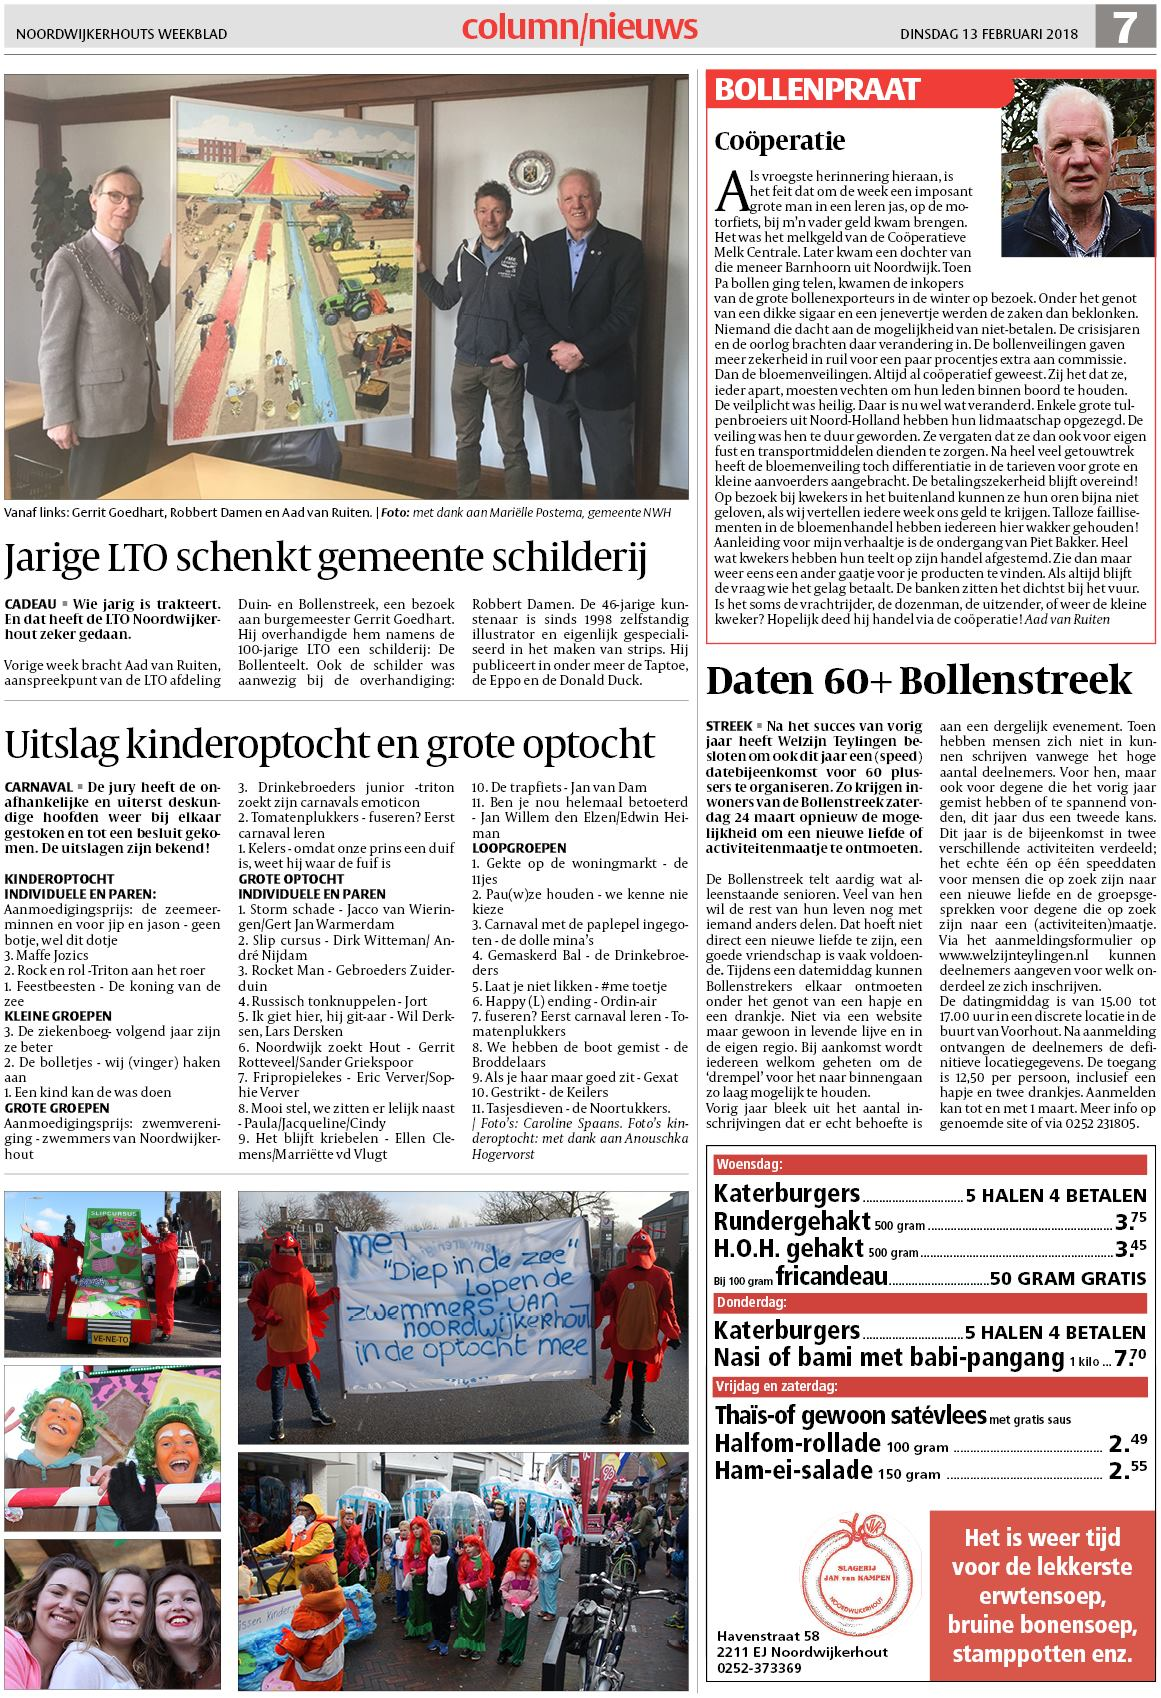 witte dames dating in Kenia